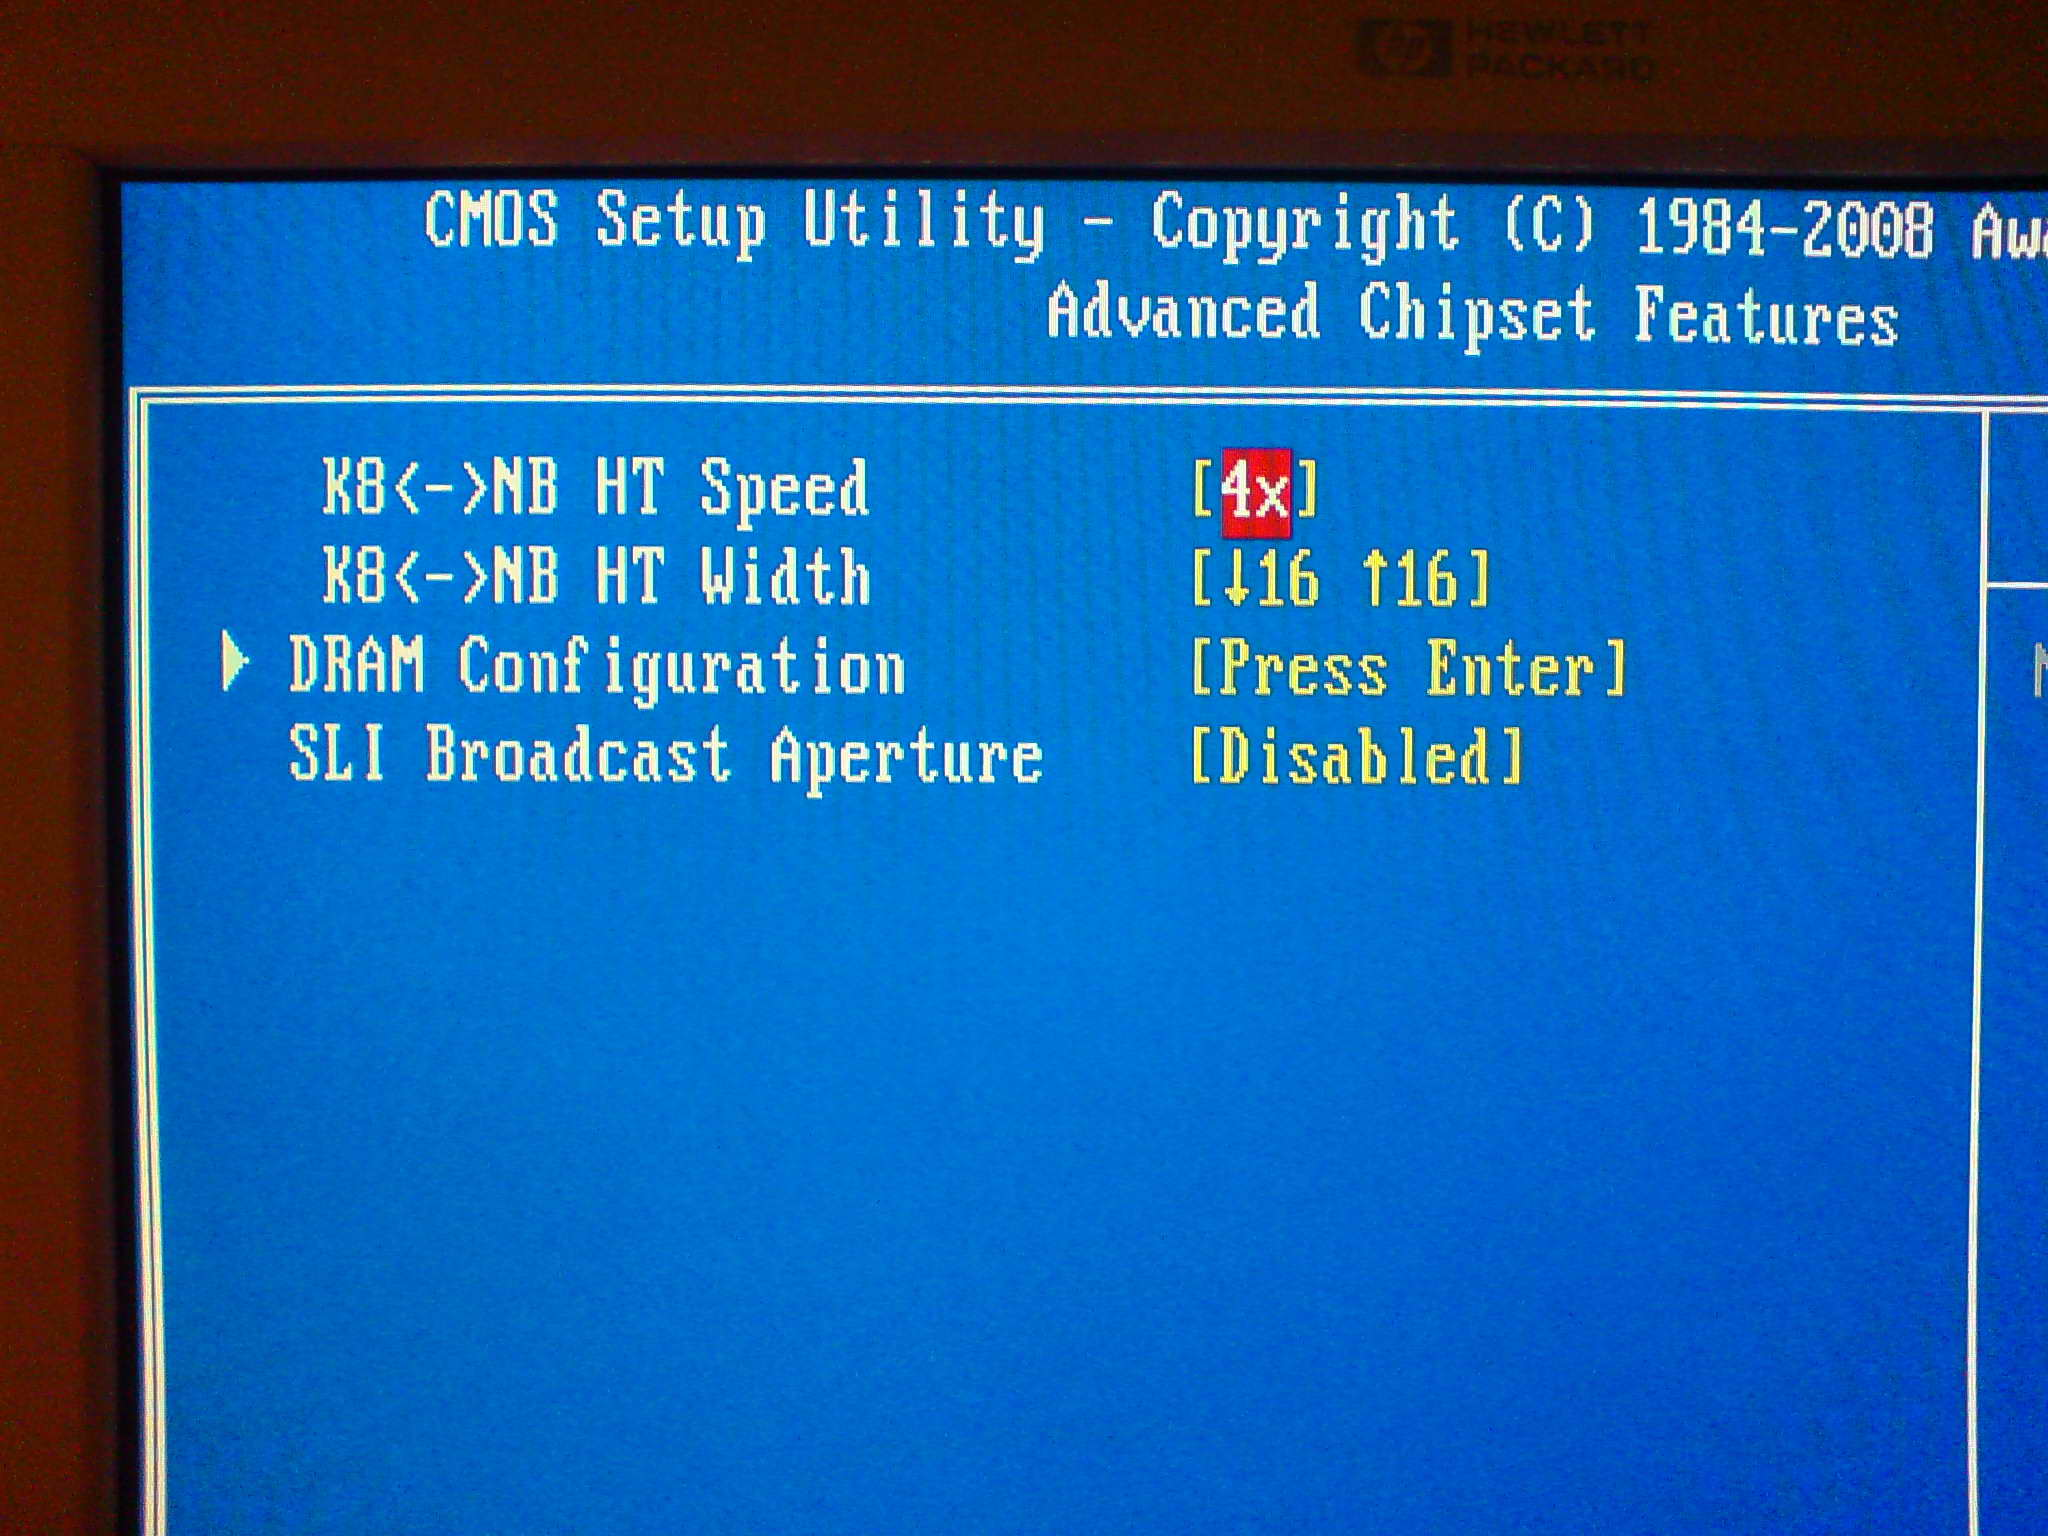 845GBV2 SOUND WINDOWS 10 DRIVER